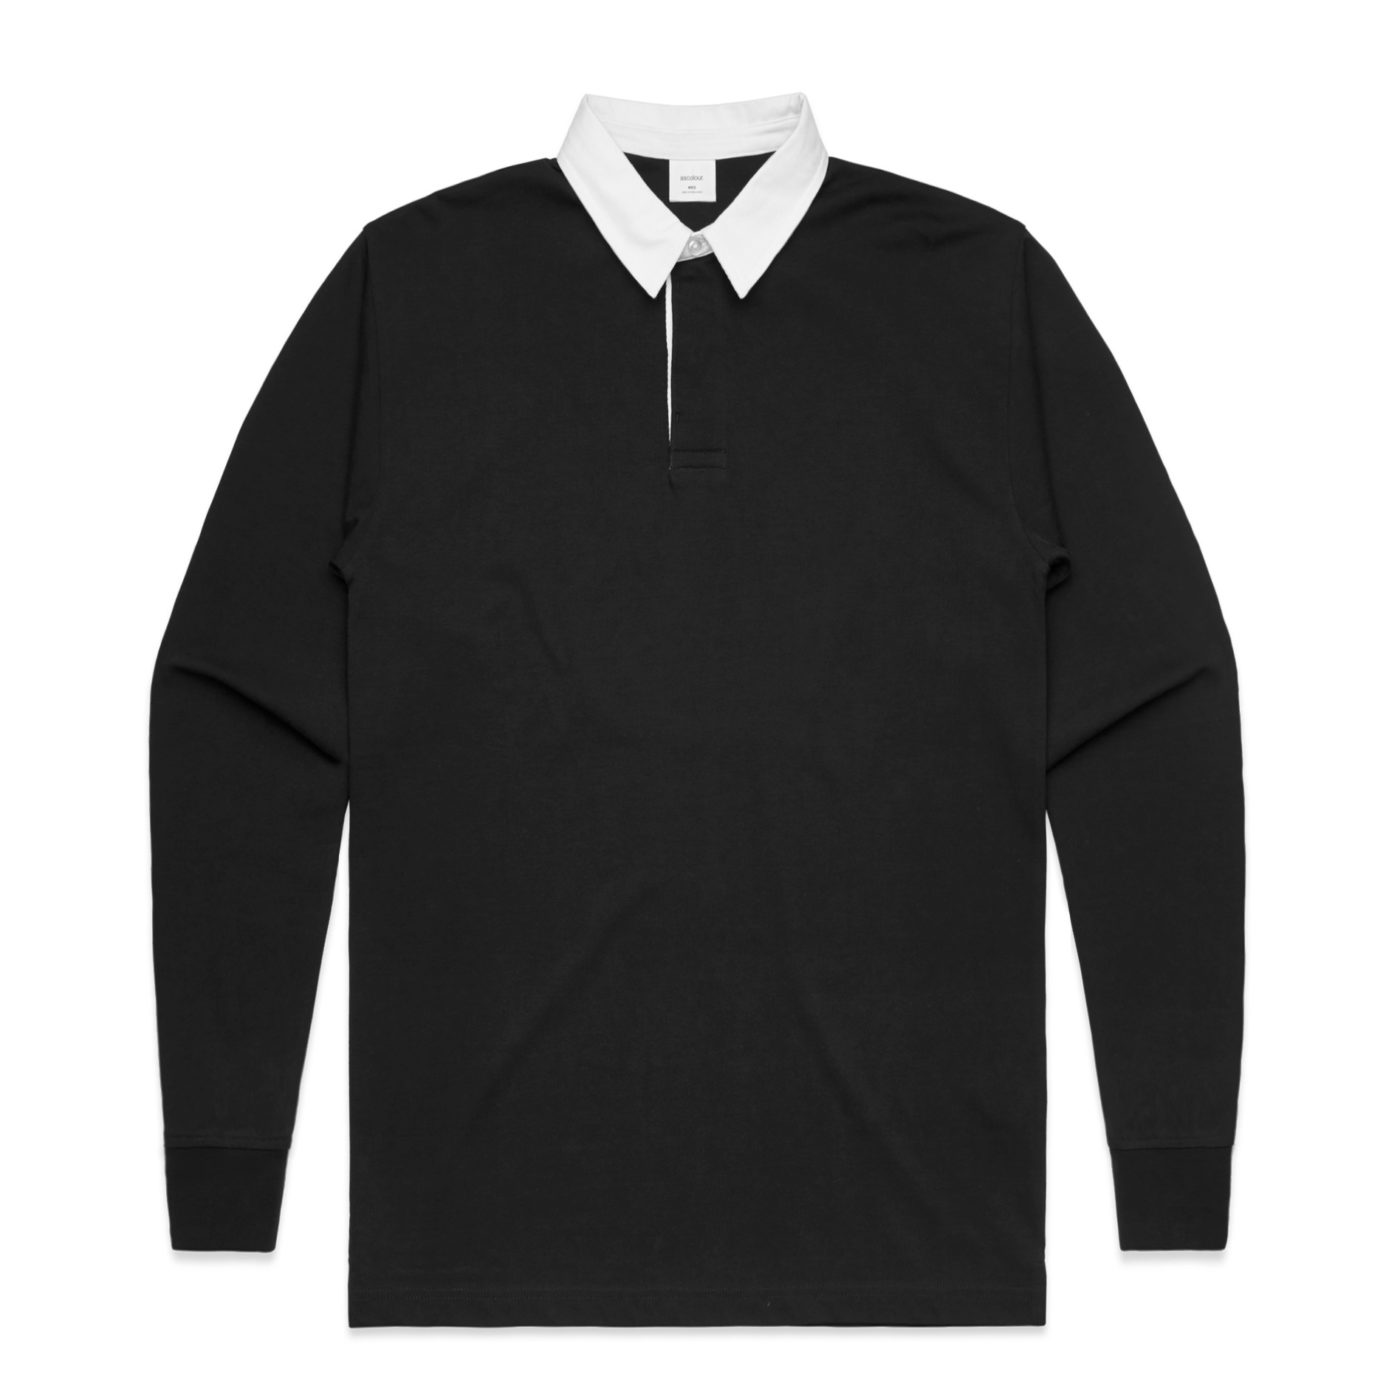 L/S Rugby jersey AS Colour black